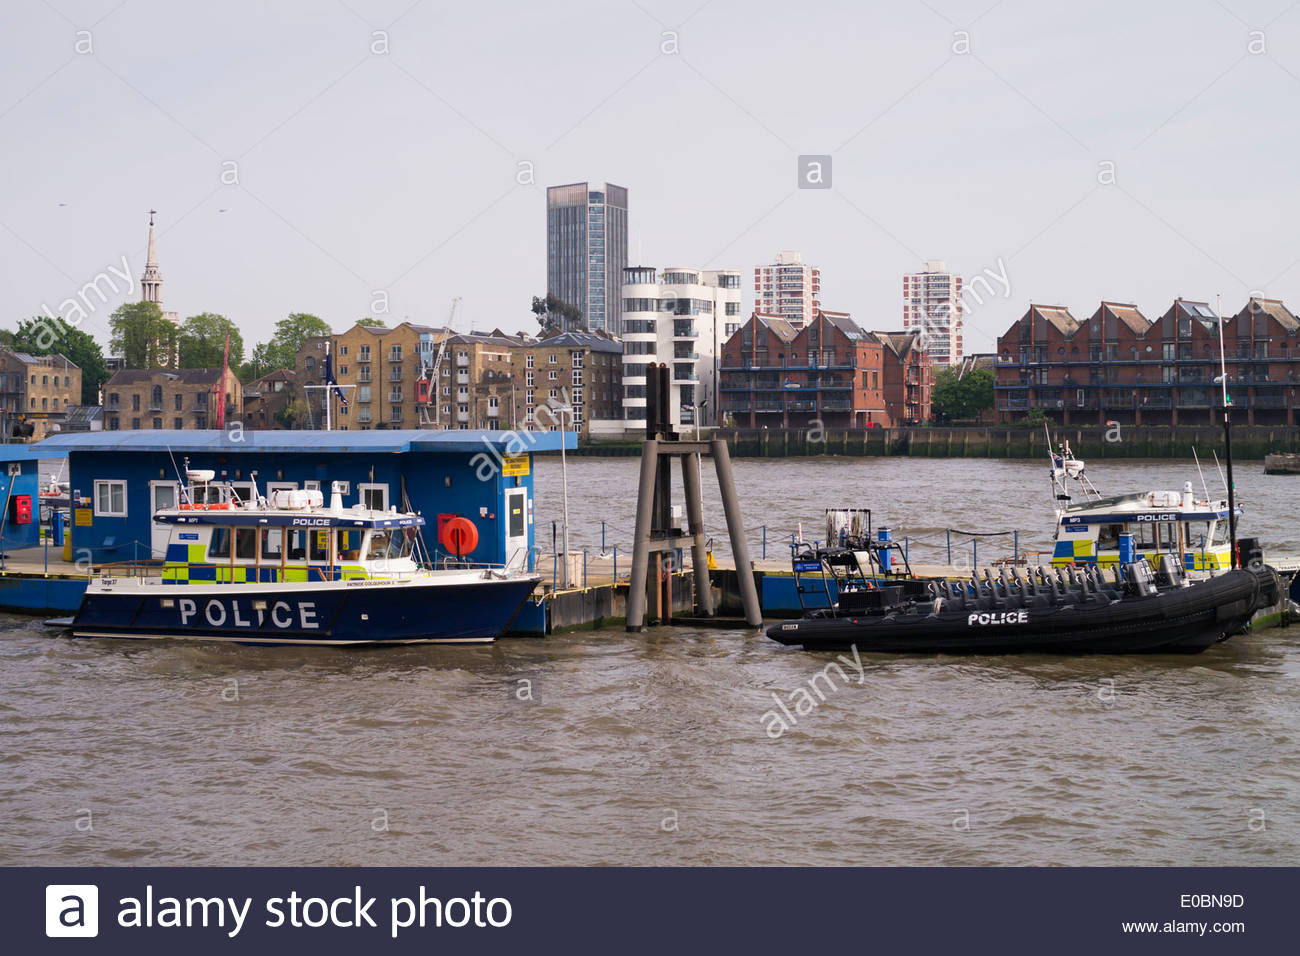 Marine Policing Unit pontoon on the River Thames at Wapping: London. - Stock Image